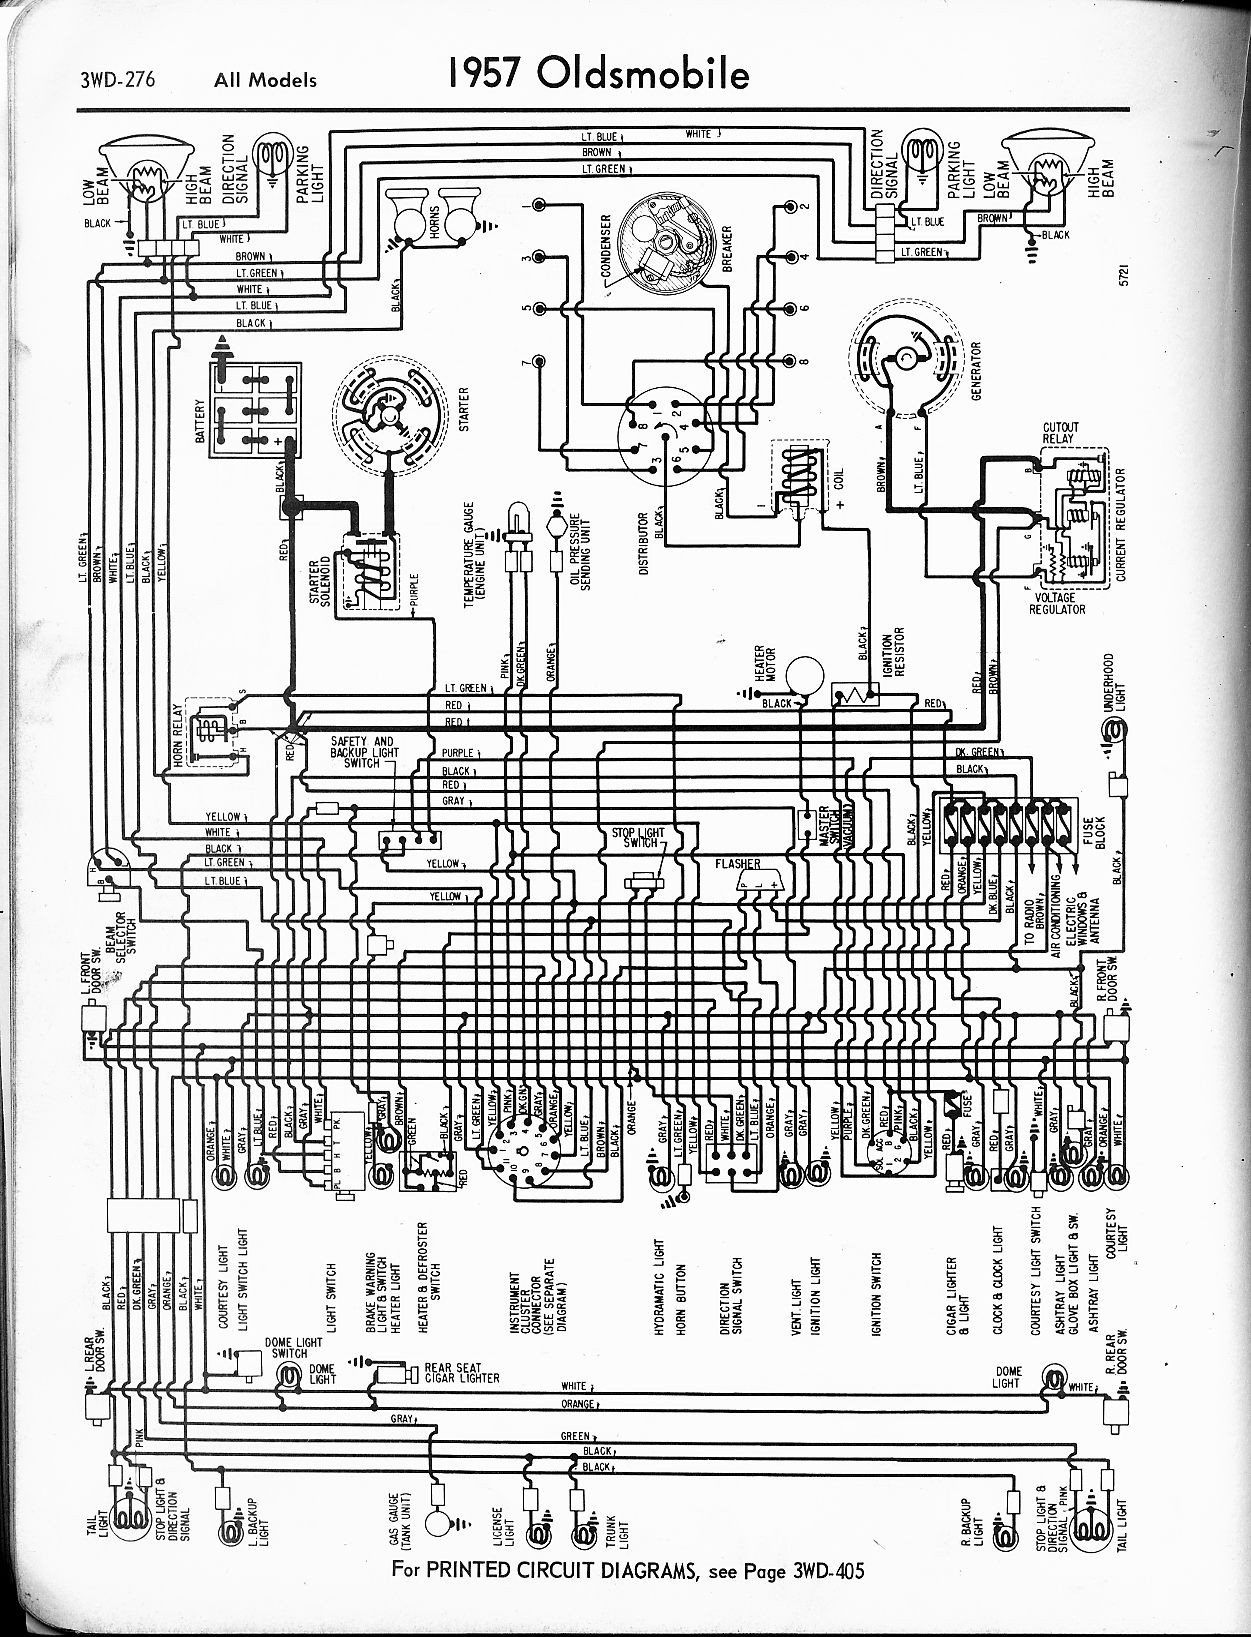 Vw 2 0 Engine Diagram 2000 Audi A6 Wiring Diagrams Instructions Related Post